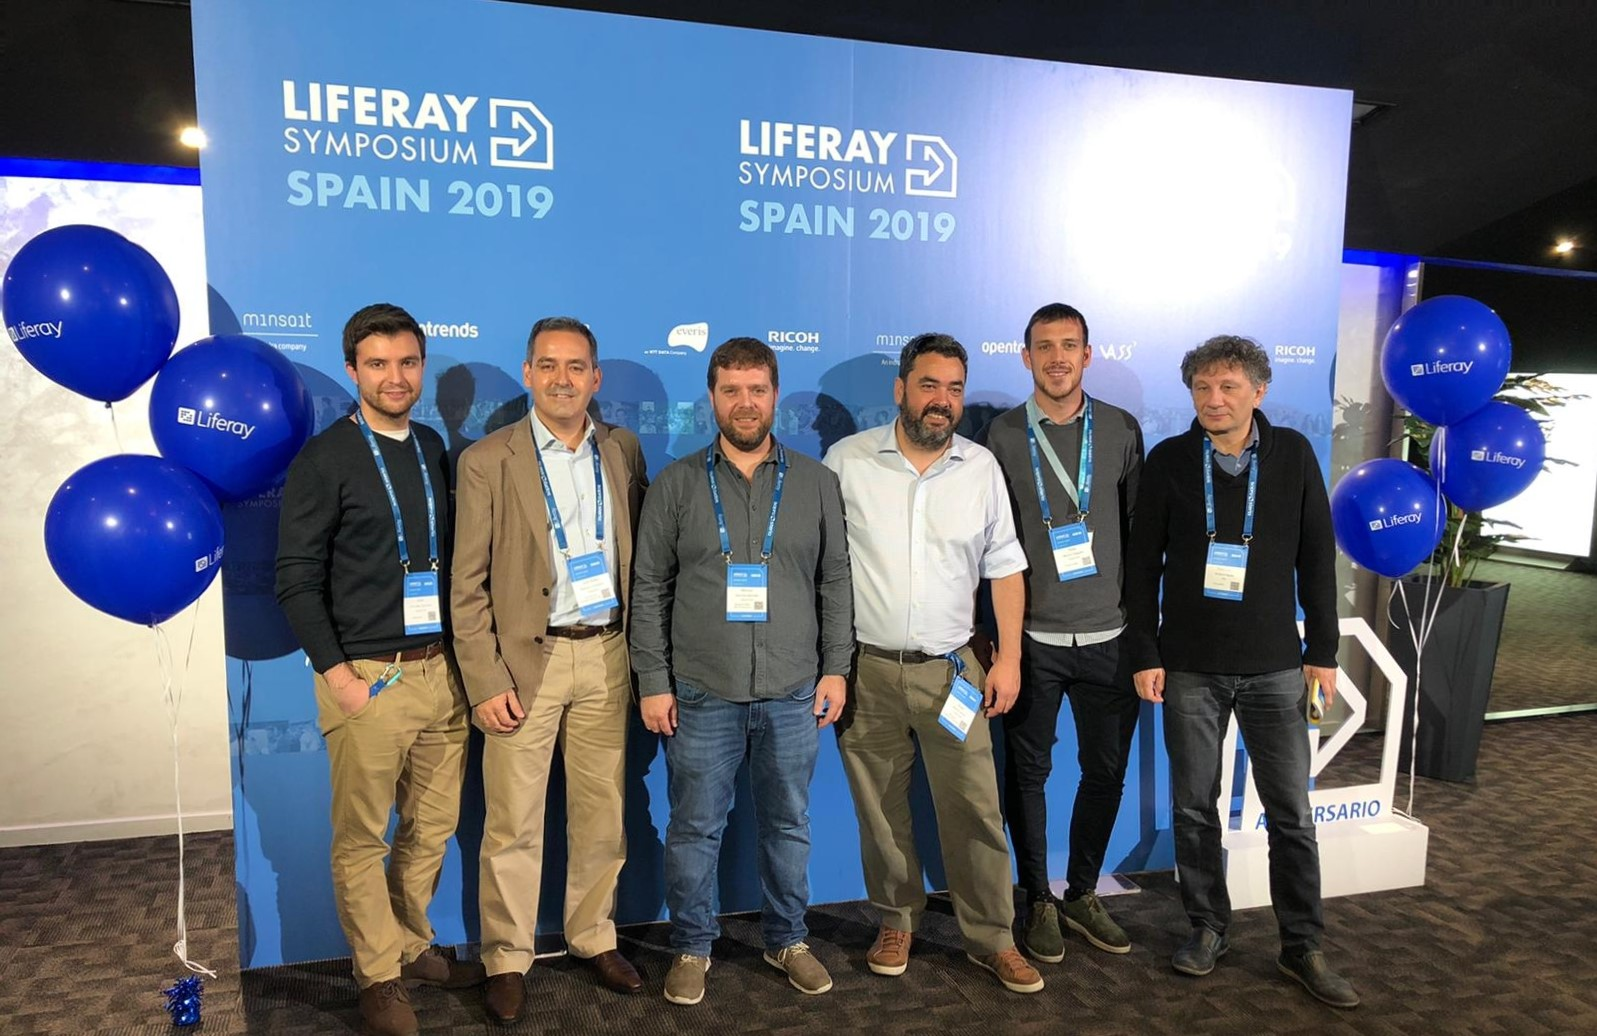 Grupo ICA en el Liferay Symposium Spain 2019